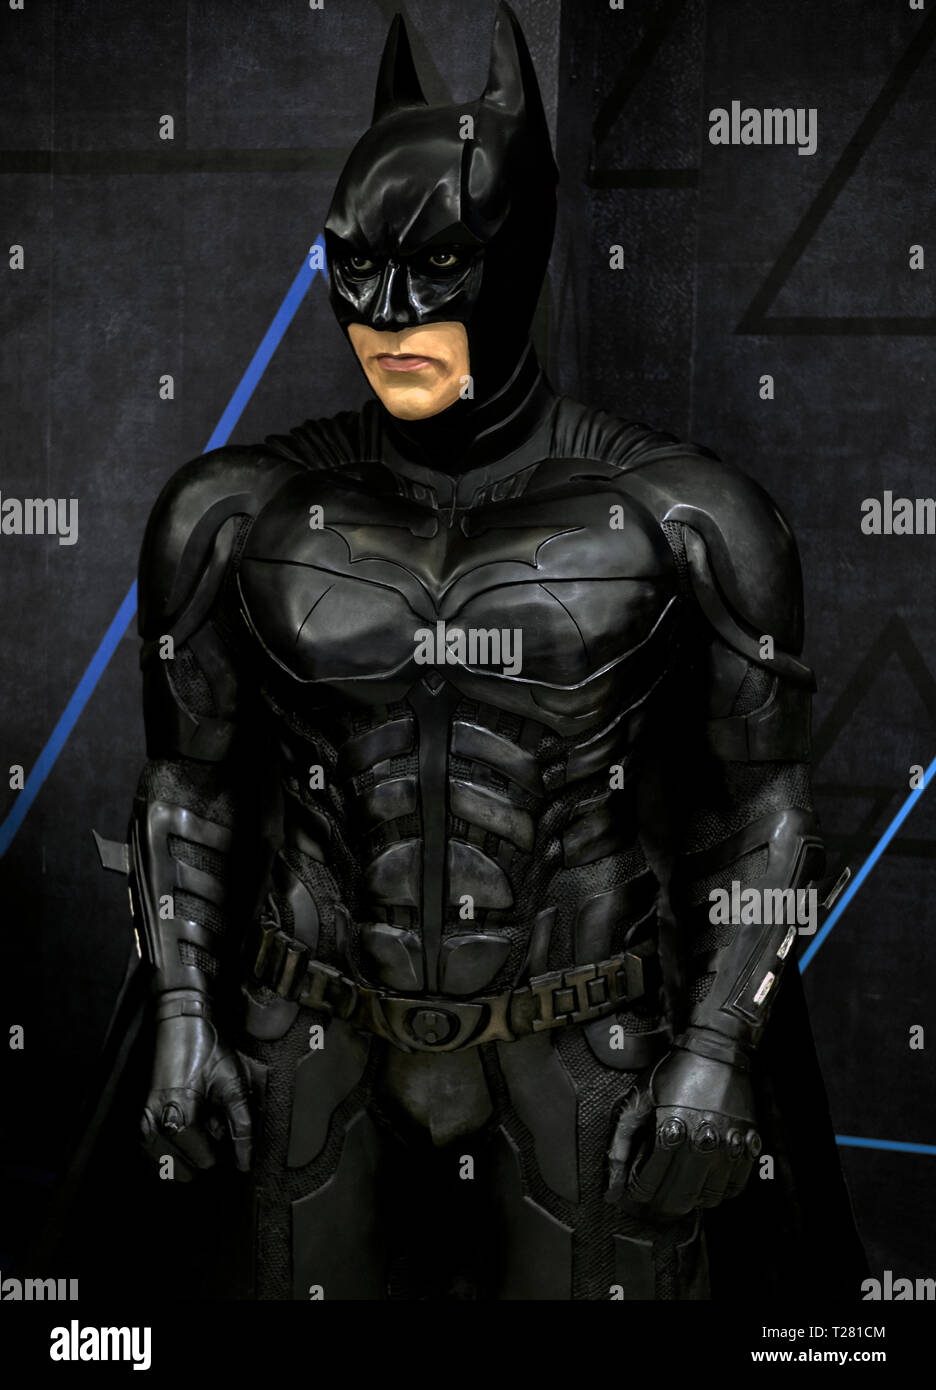 Da Uomo Il Cavaliere Oscuro Sorge Muscle Batman supereroi film /& Tv Costume